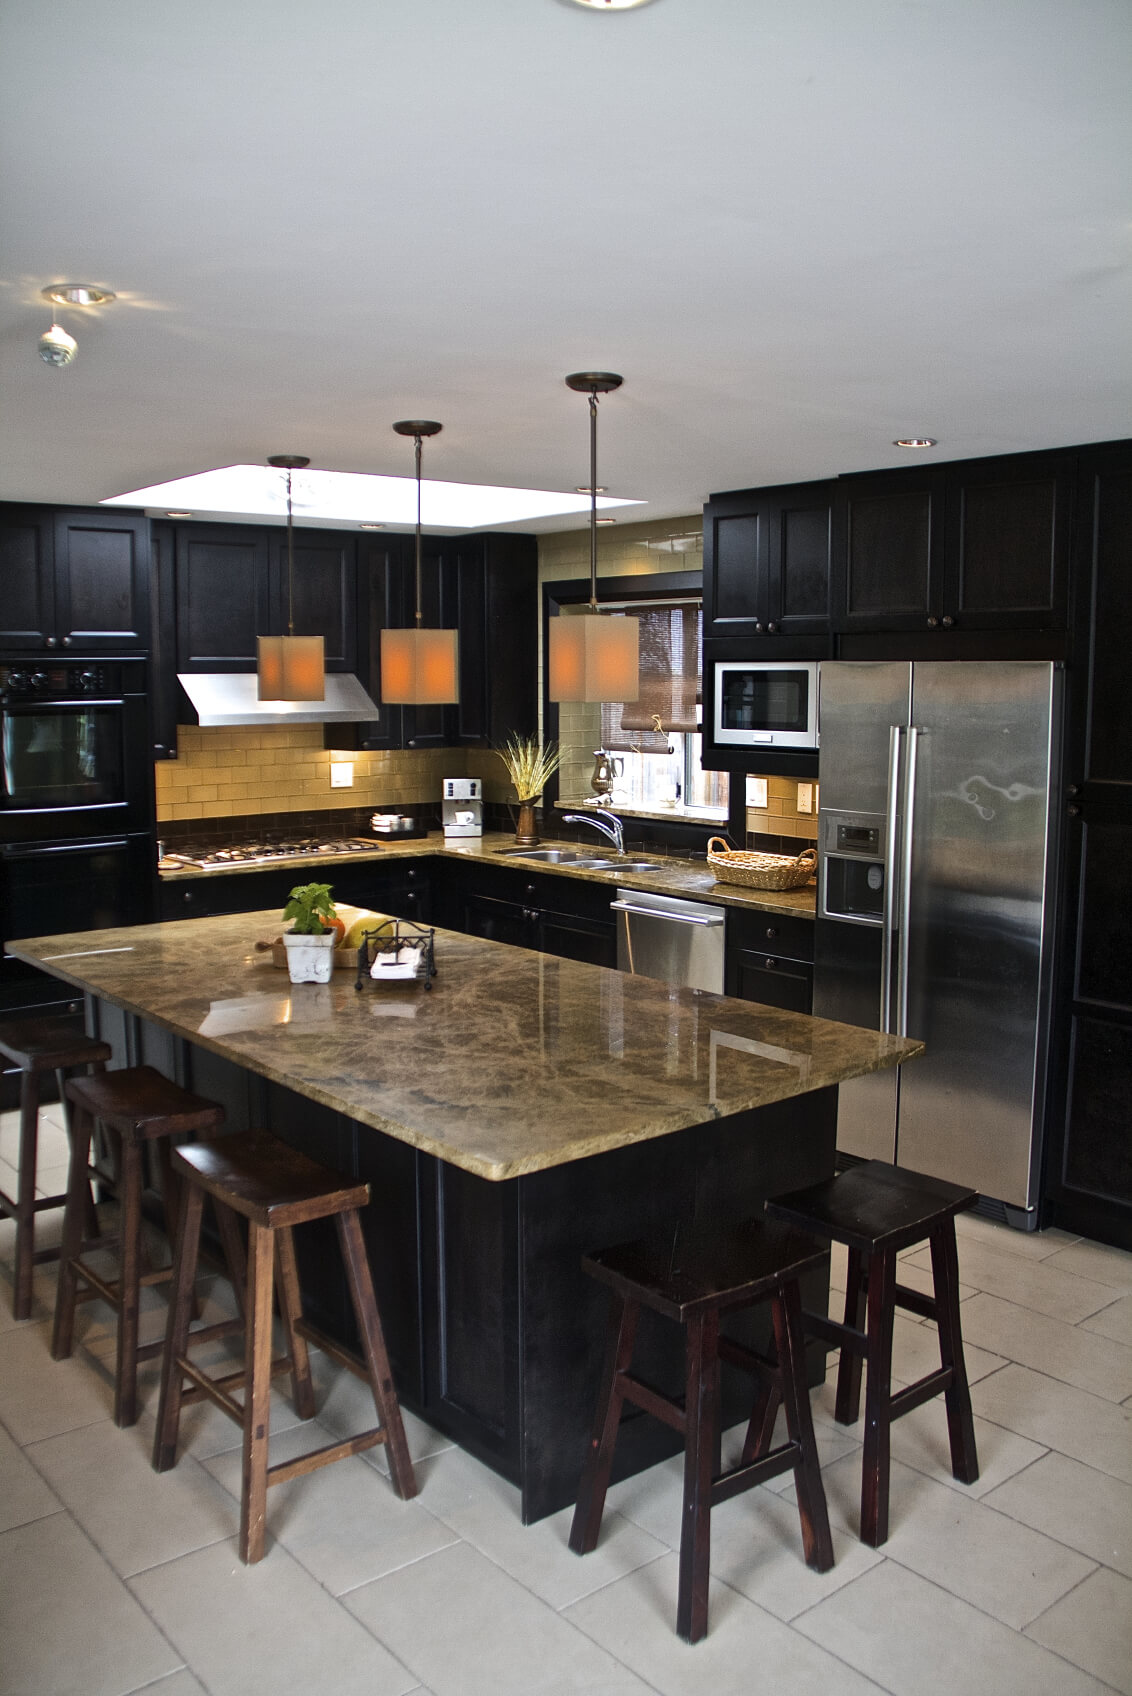 Contemporary Black L Shaped Kitchen With Long Island Set On White Tile  Floor.